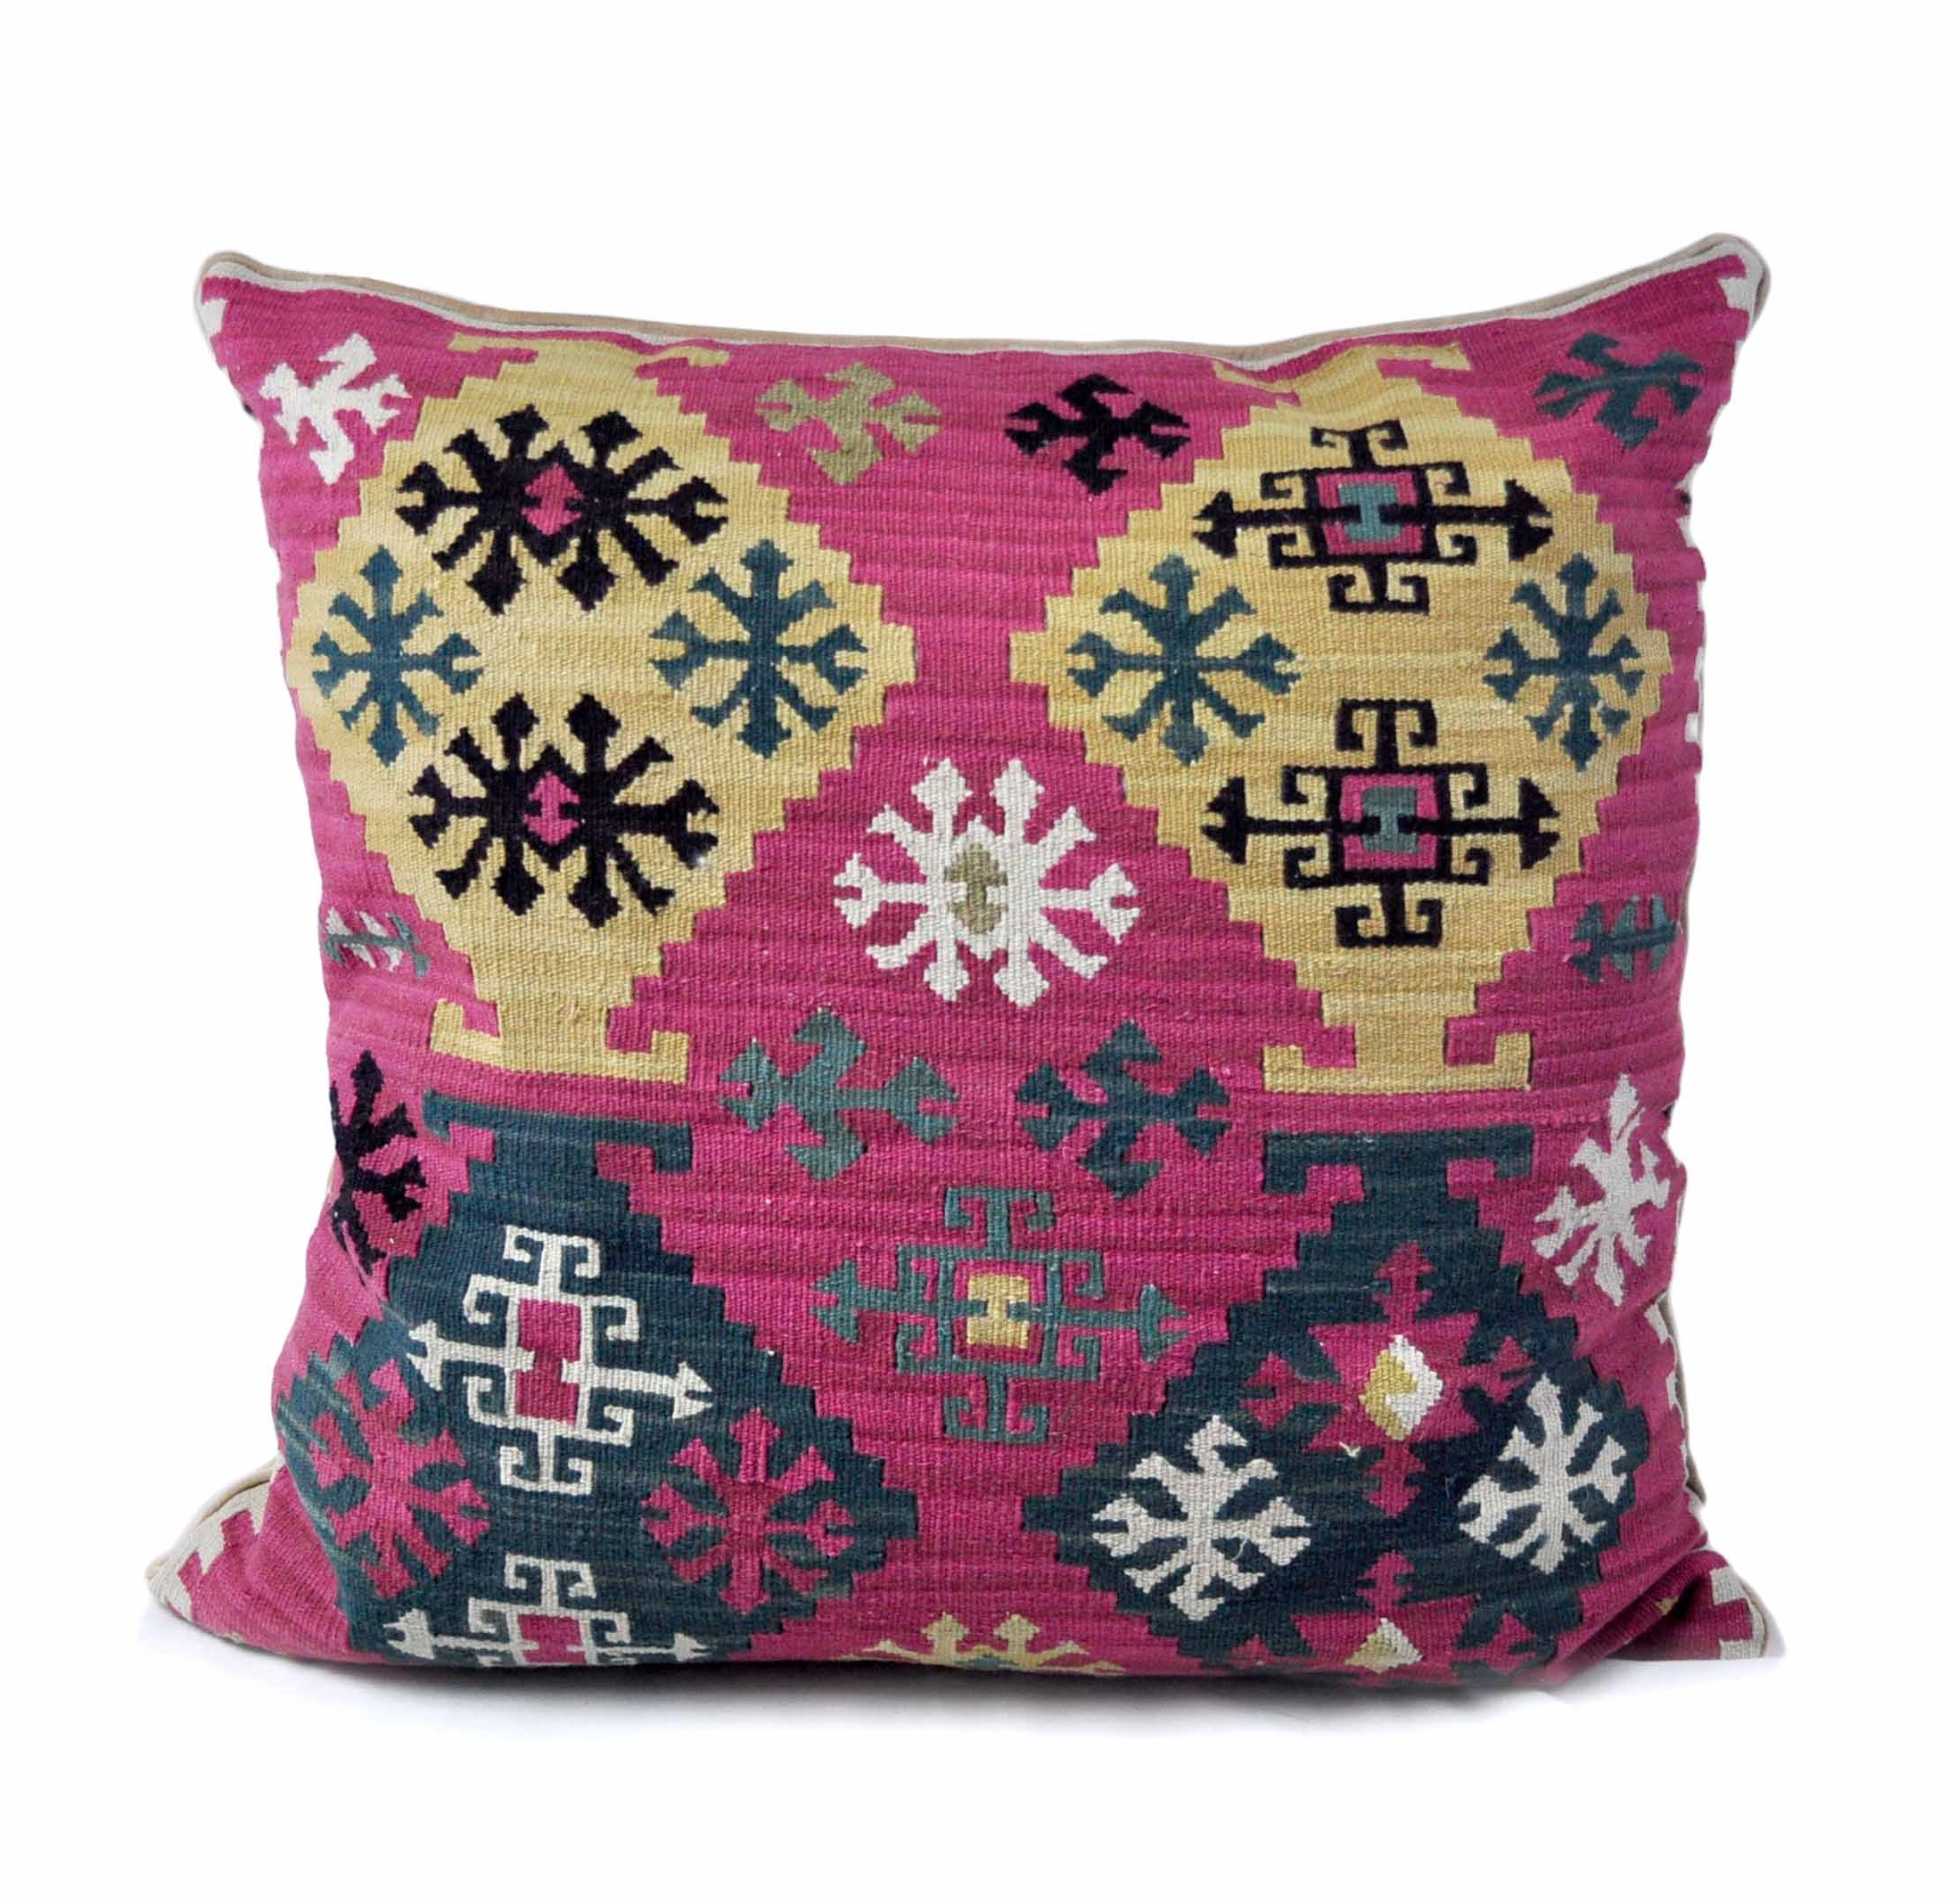 24″x24″ Hand-woven Wool Kilim Pillow Cover 12981036